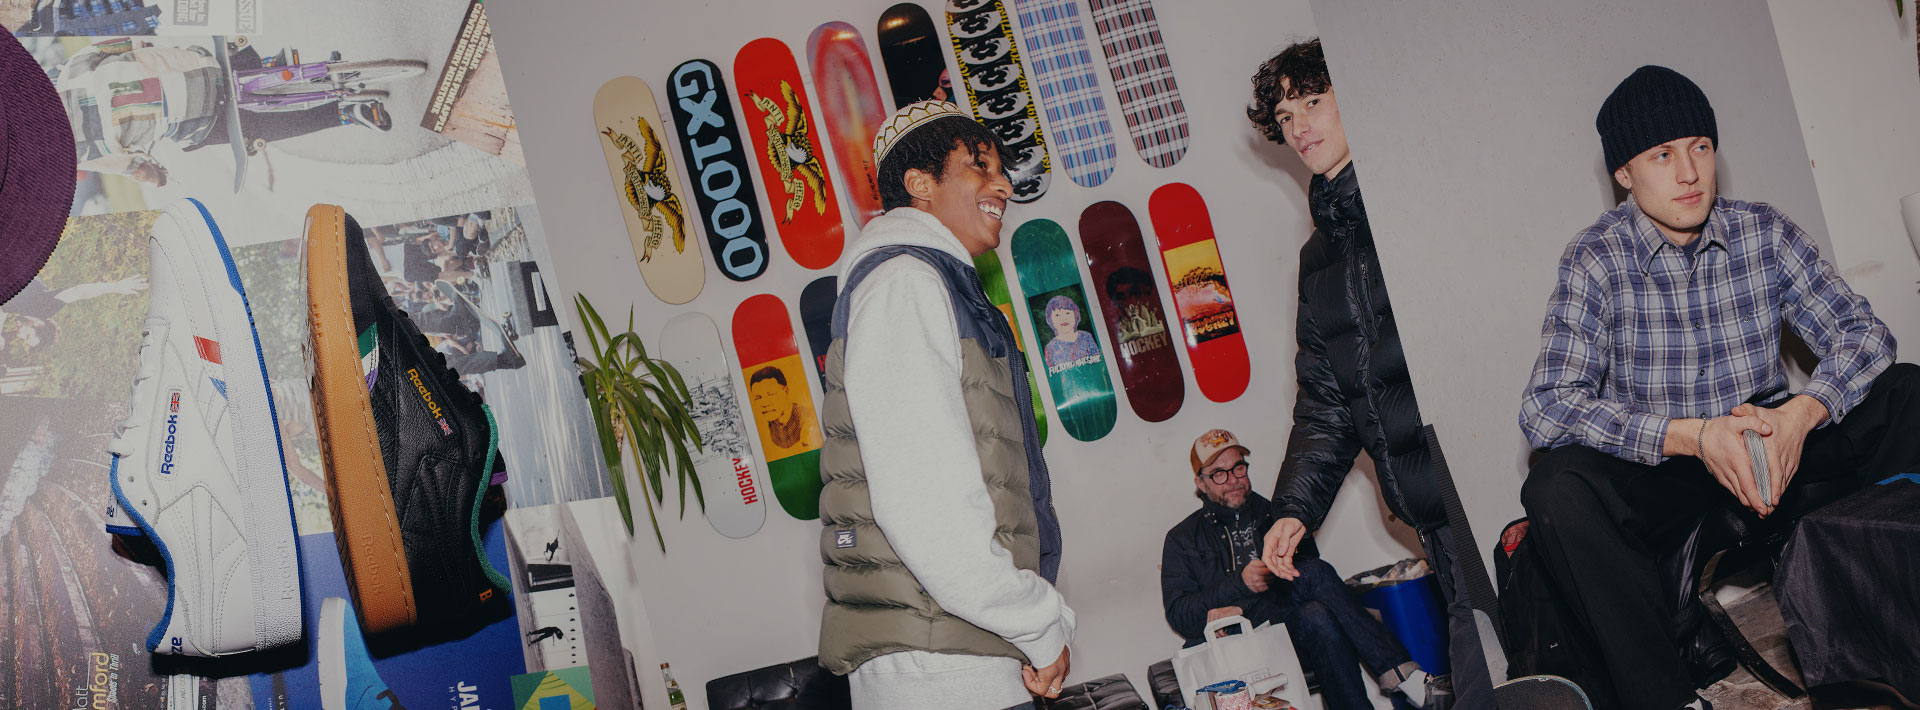 Sk8 lthr snkrs nd skateboarding stuff that could be featured in an art gallery. Meet CIVILIST, *the* place in Berlin for knocking around nd cop the best kicks.